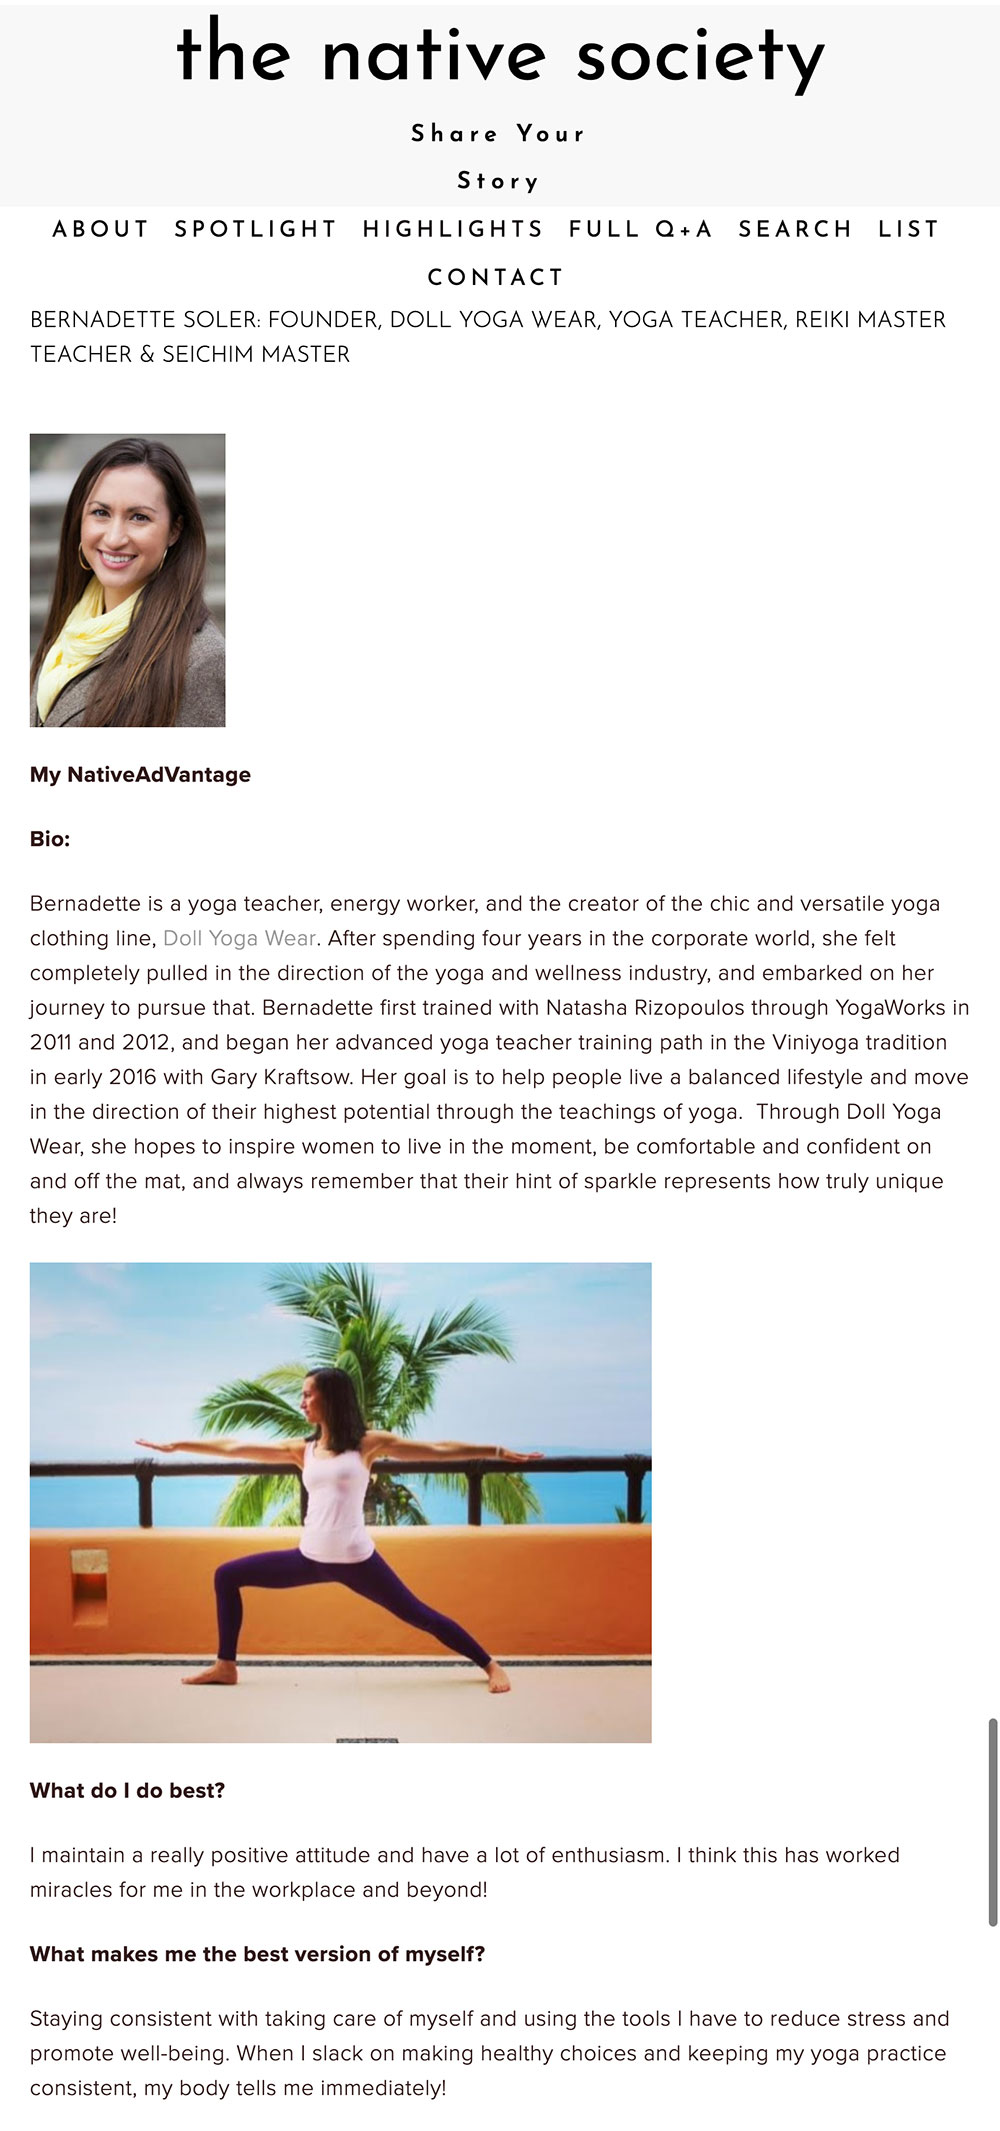 Bernadette Soler profiled by The Native Society directory